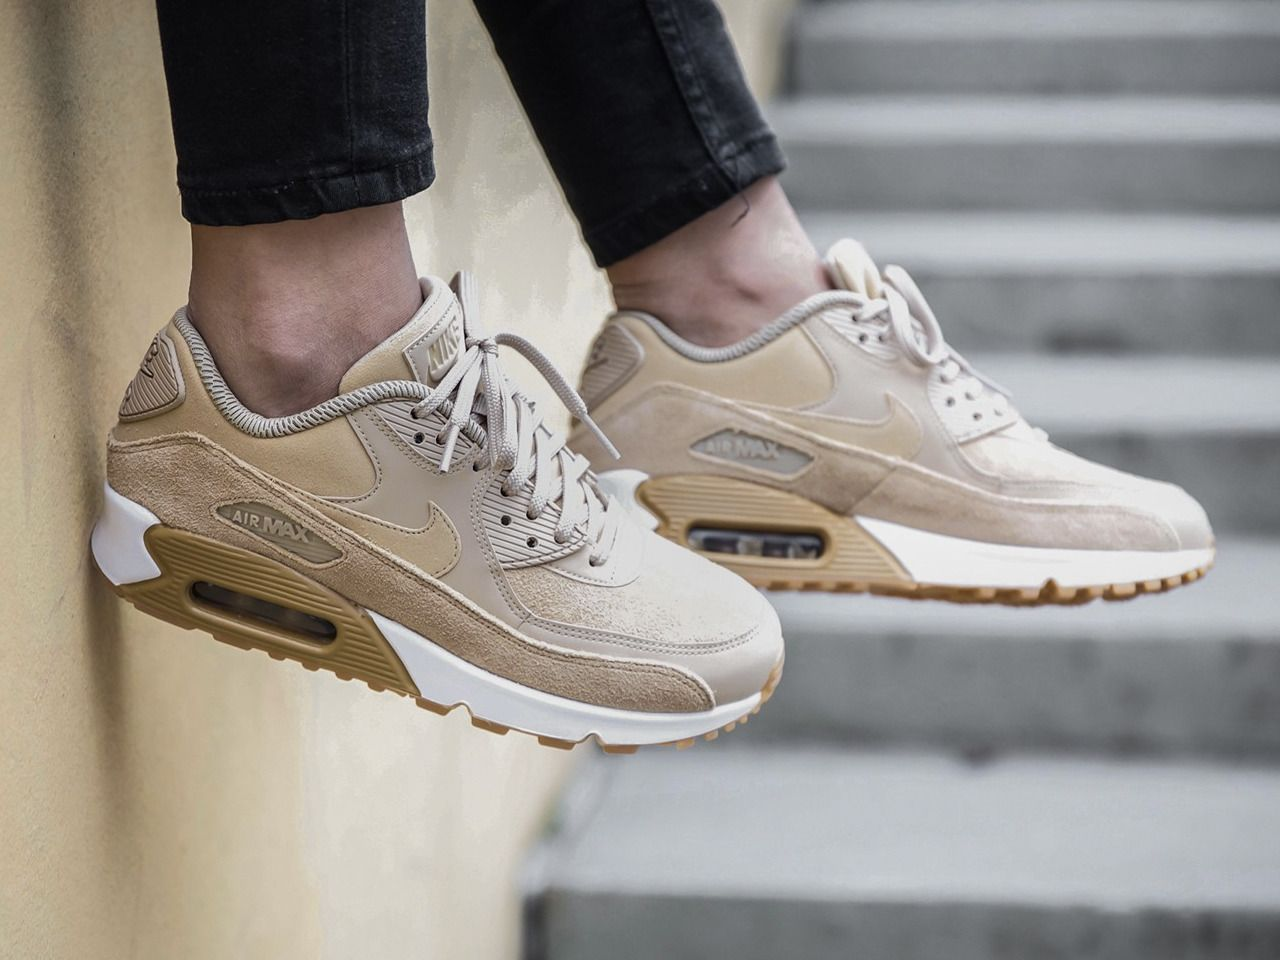 AIR MAX 90 Moda casual